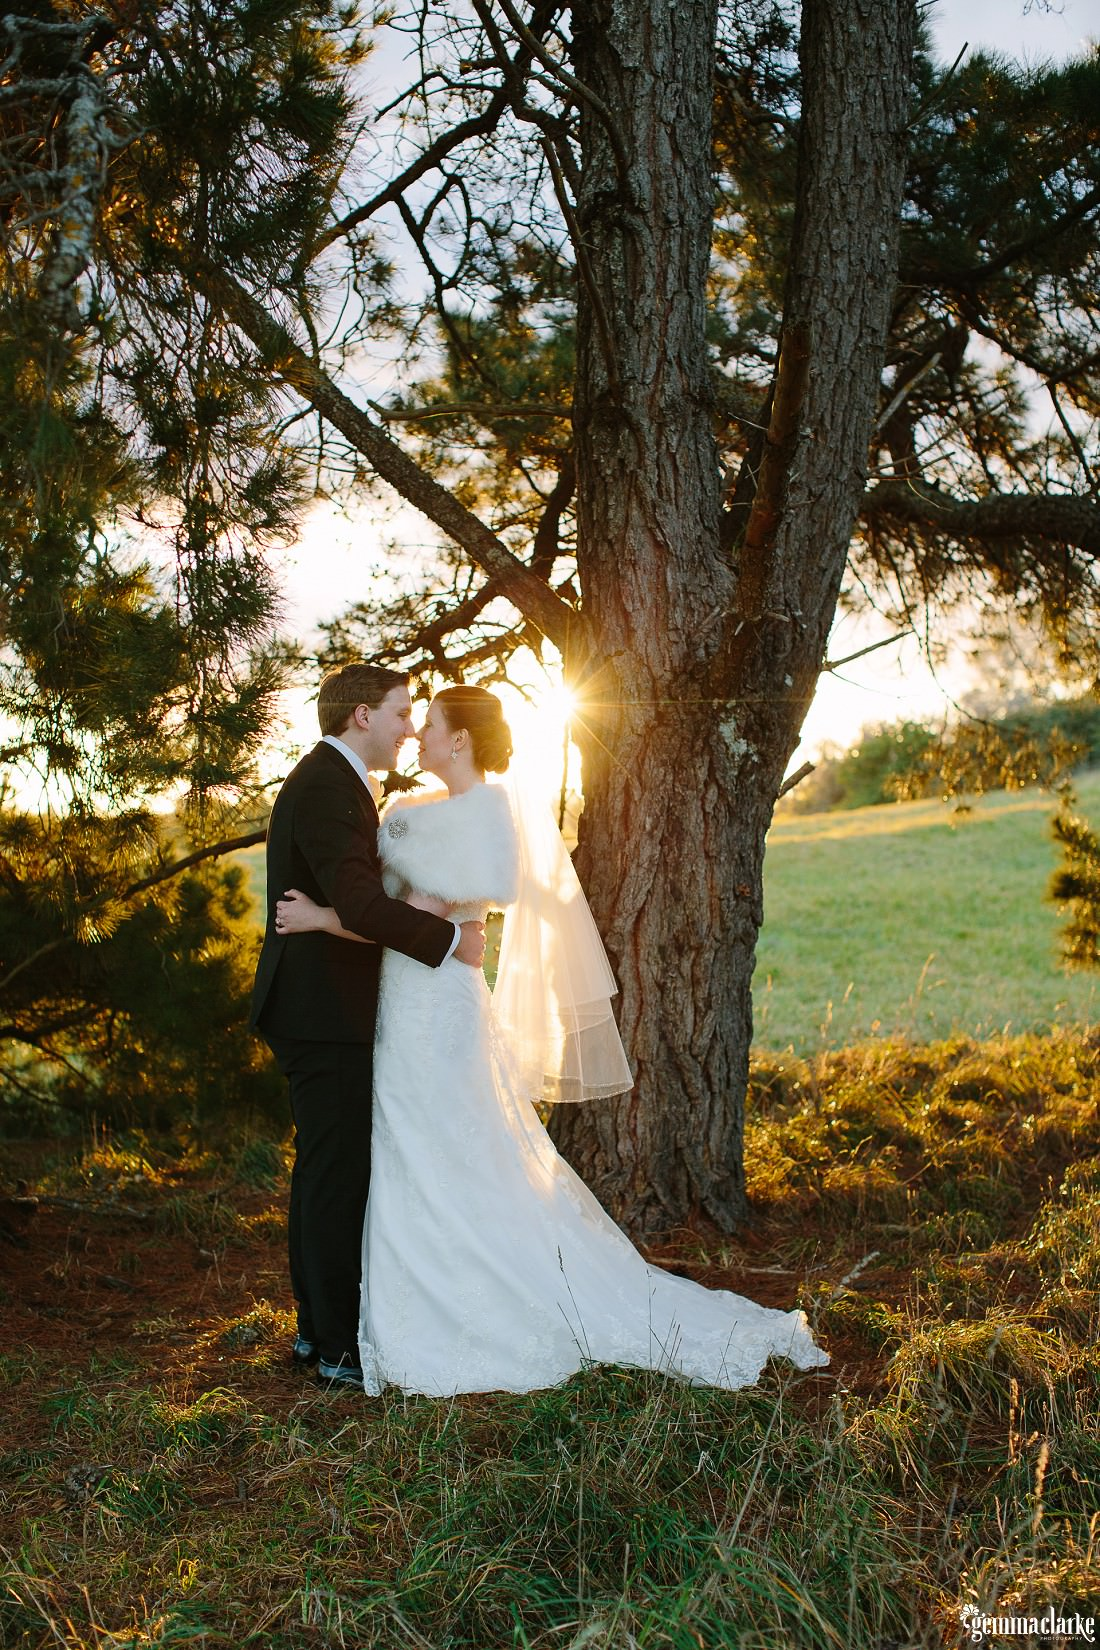 A bride and groom embrace under a tree as the sun streams in behind them - Bowral Winter Wedding